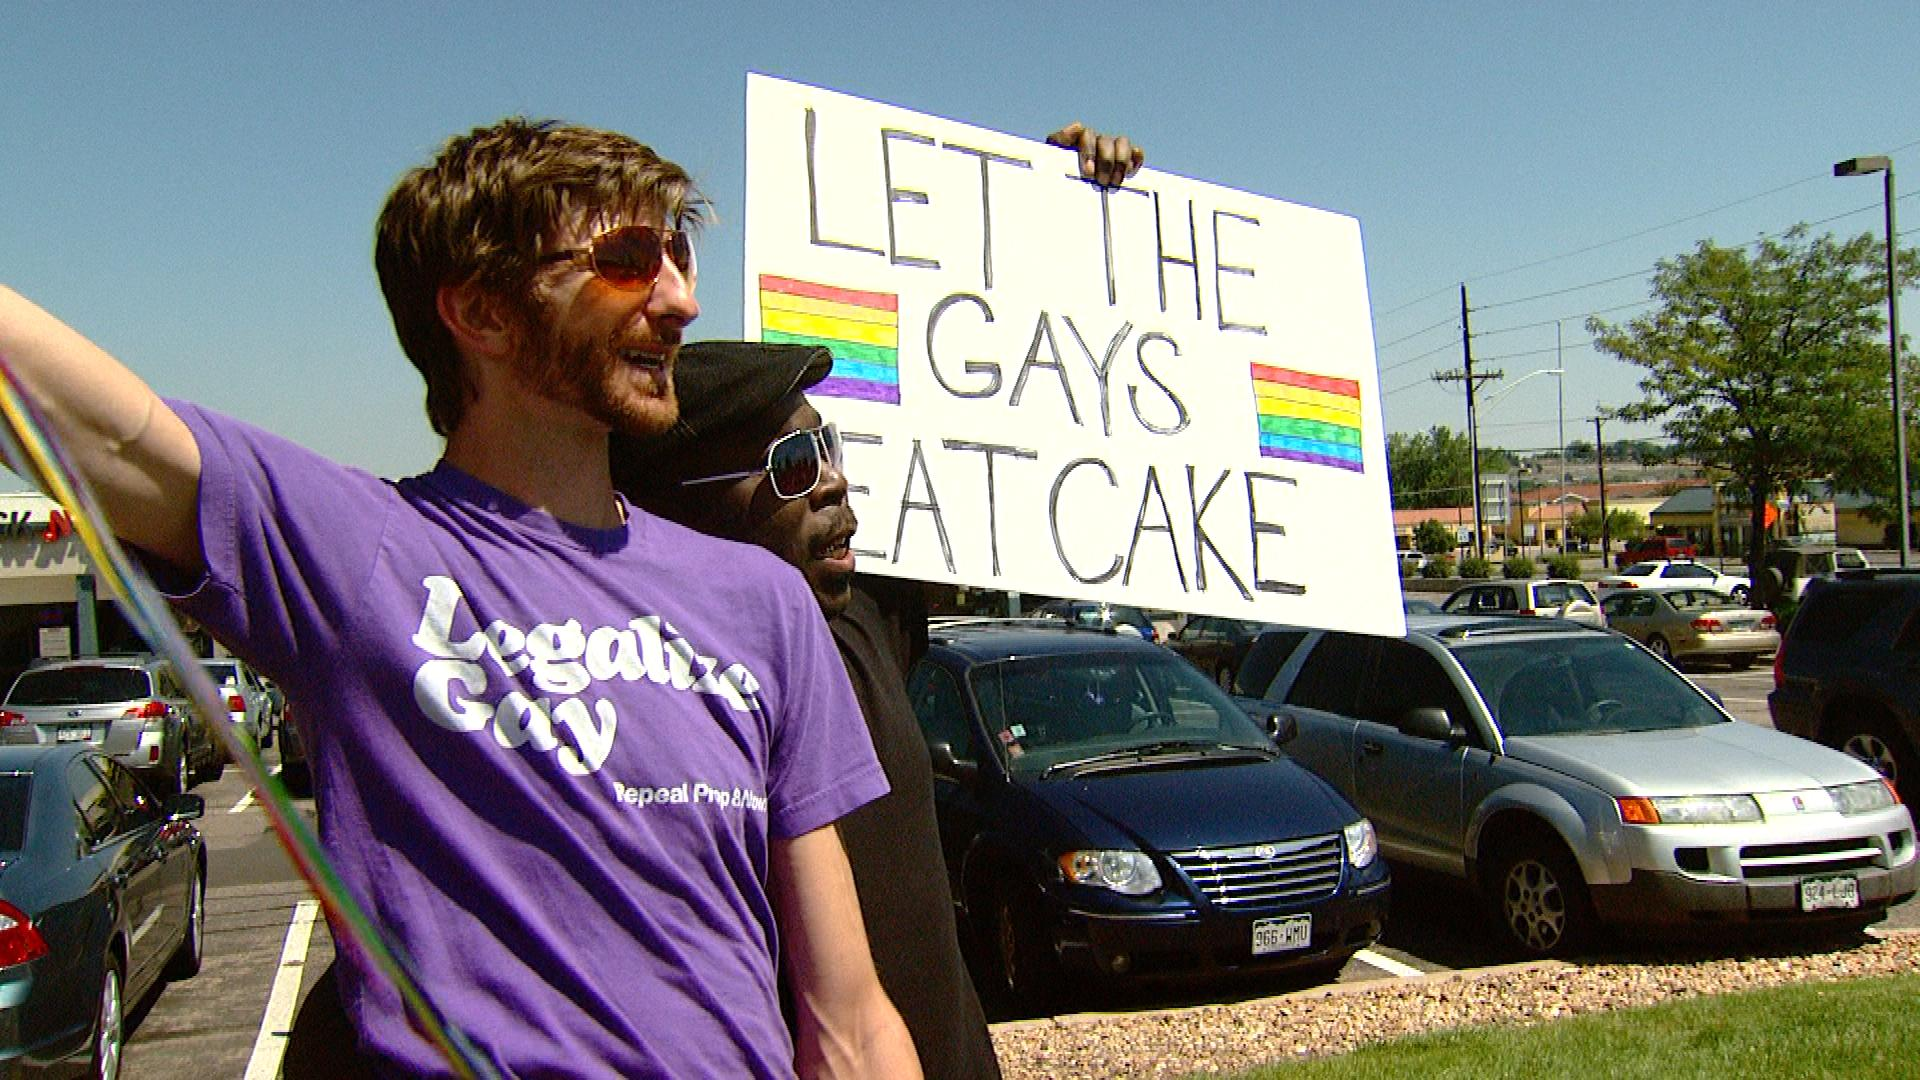 A protest outside of Masterpiece Cakeshop (credit: CBS)